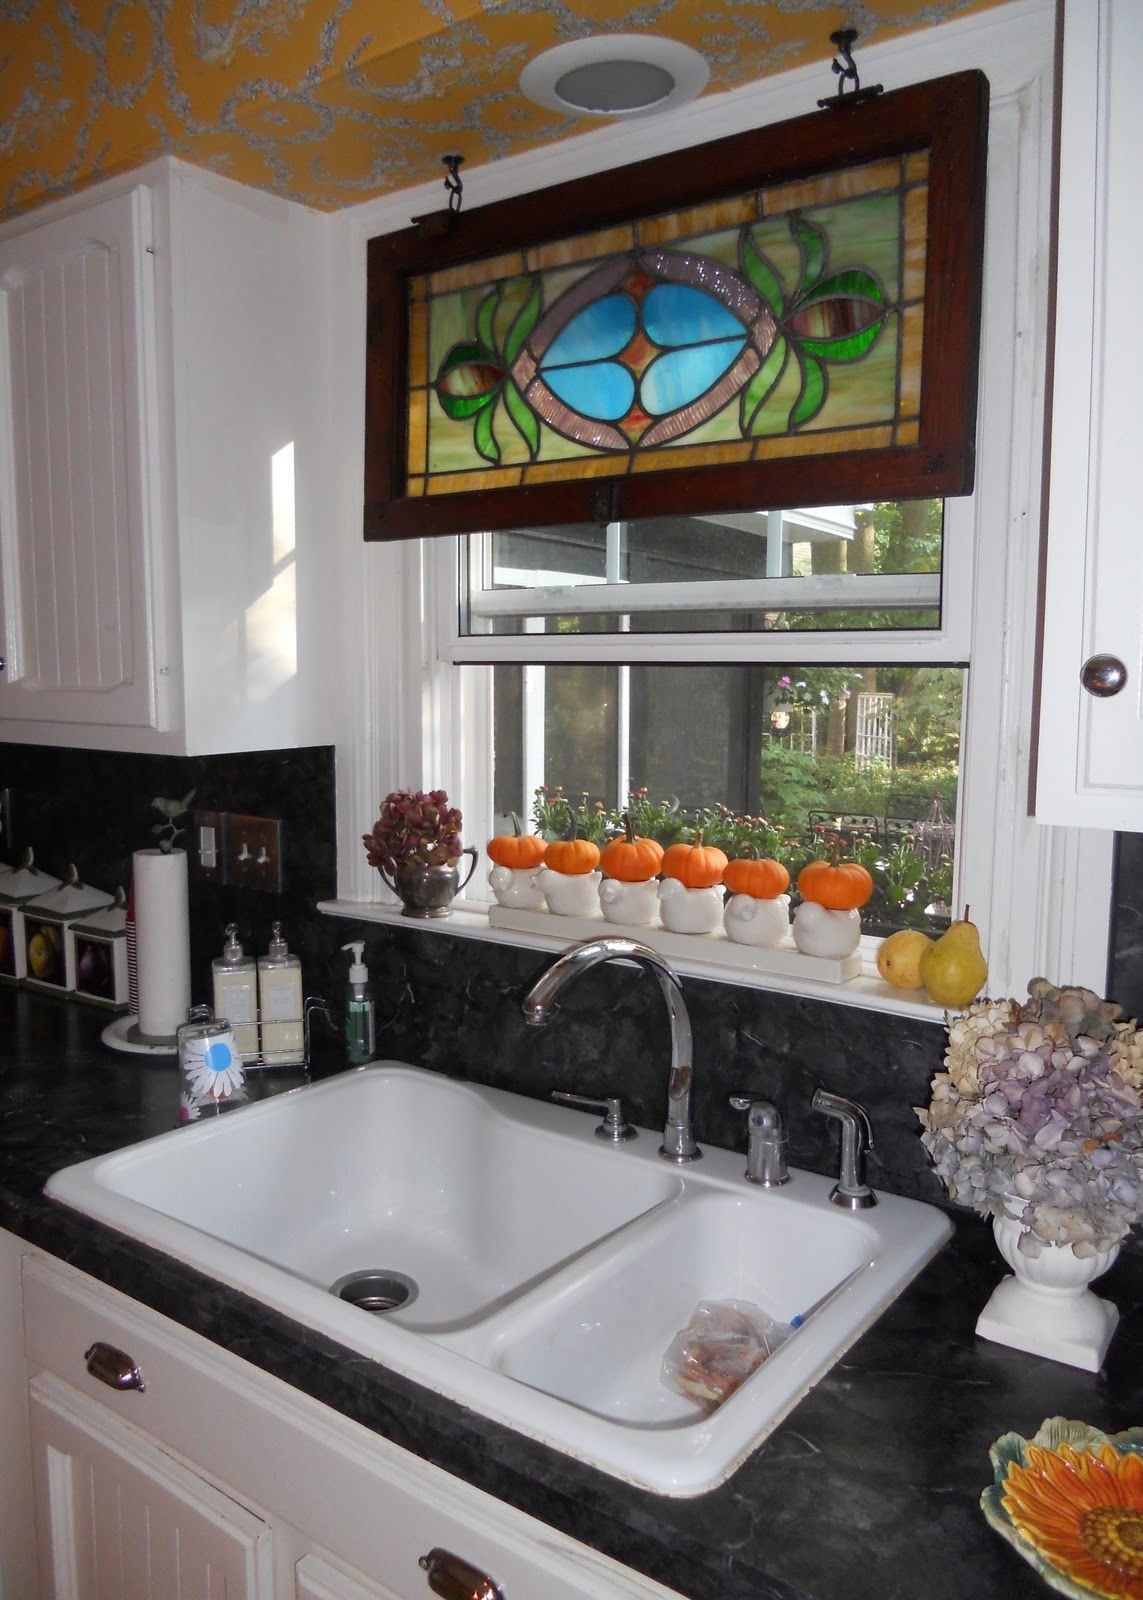 Kitchen sink window decor  tend to be seeing more stained glass panels on the upper level of